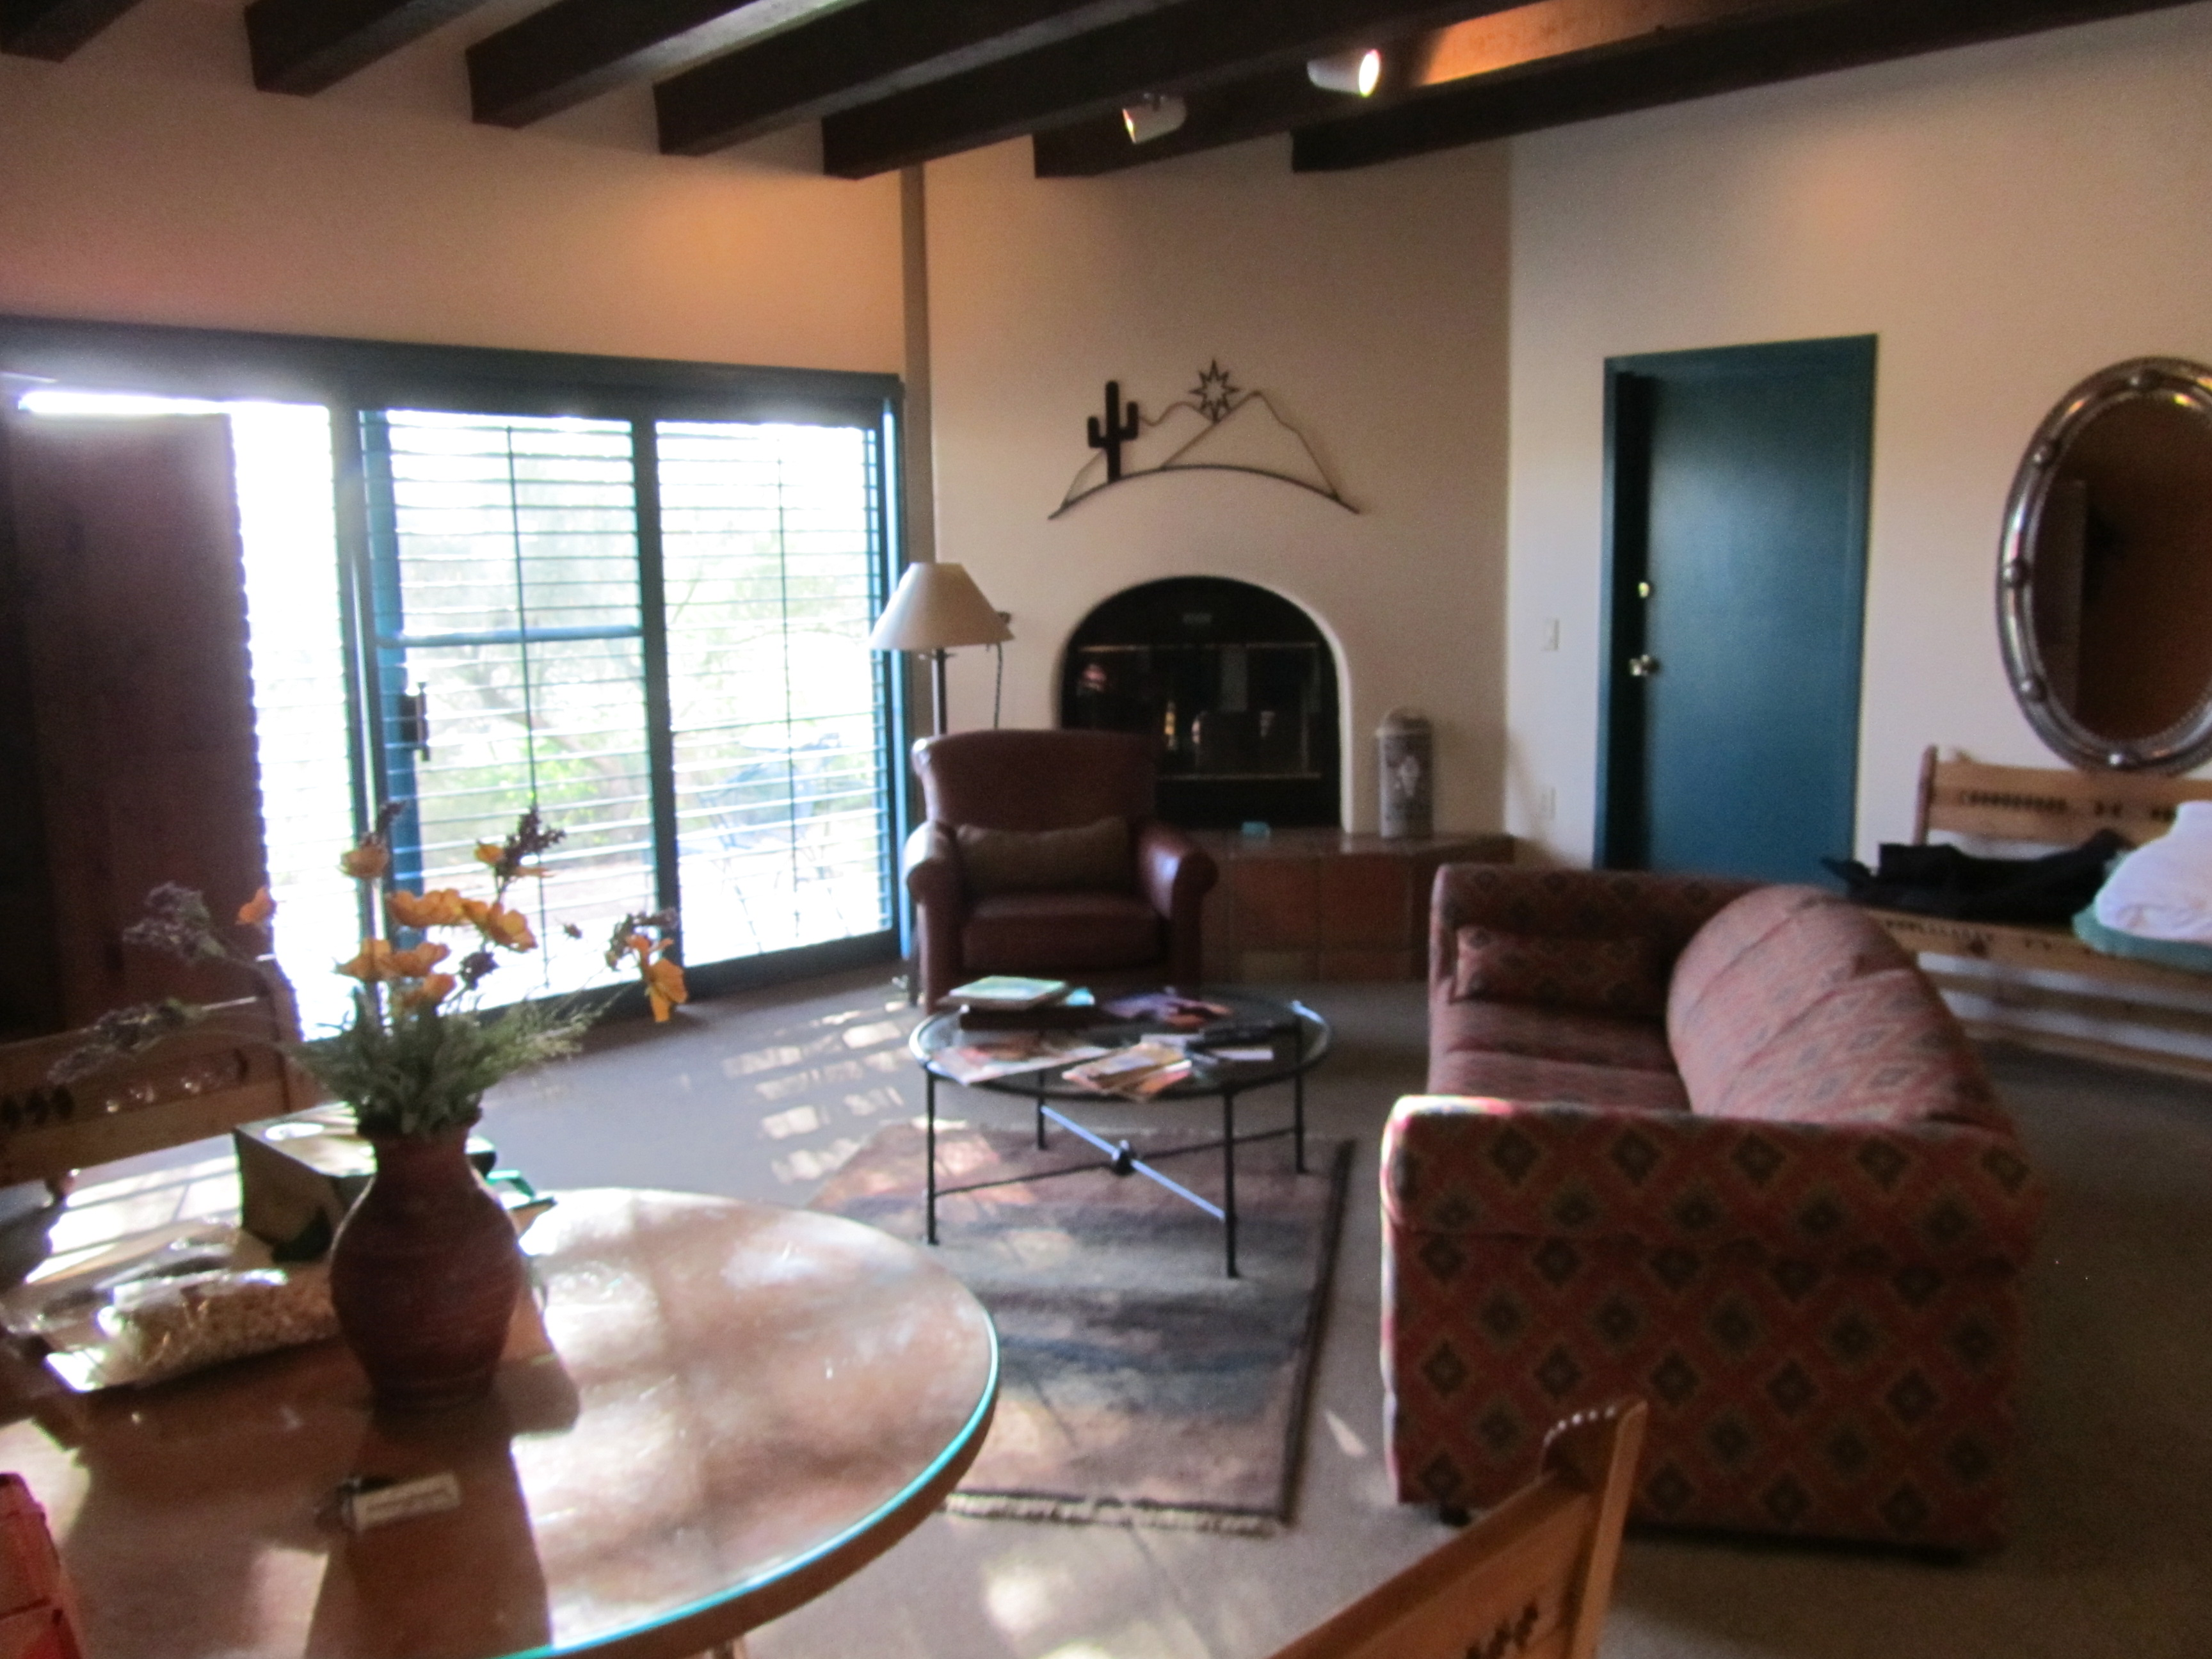 Cancun an all suites resort 2017 review family vacation critic - Starr Pass Golf Suites Tucson Az 2018 Hotel Review Family Vacation Critic